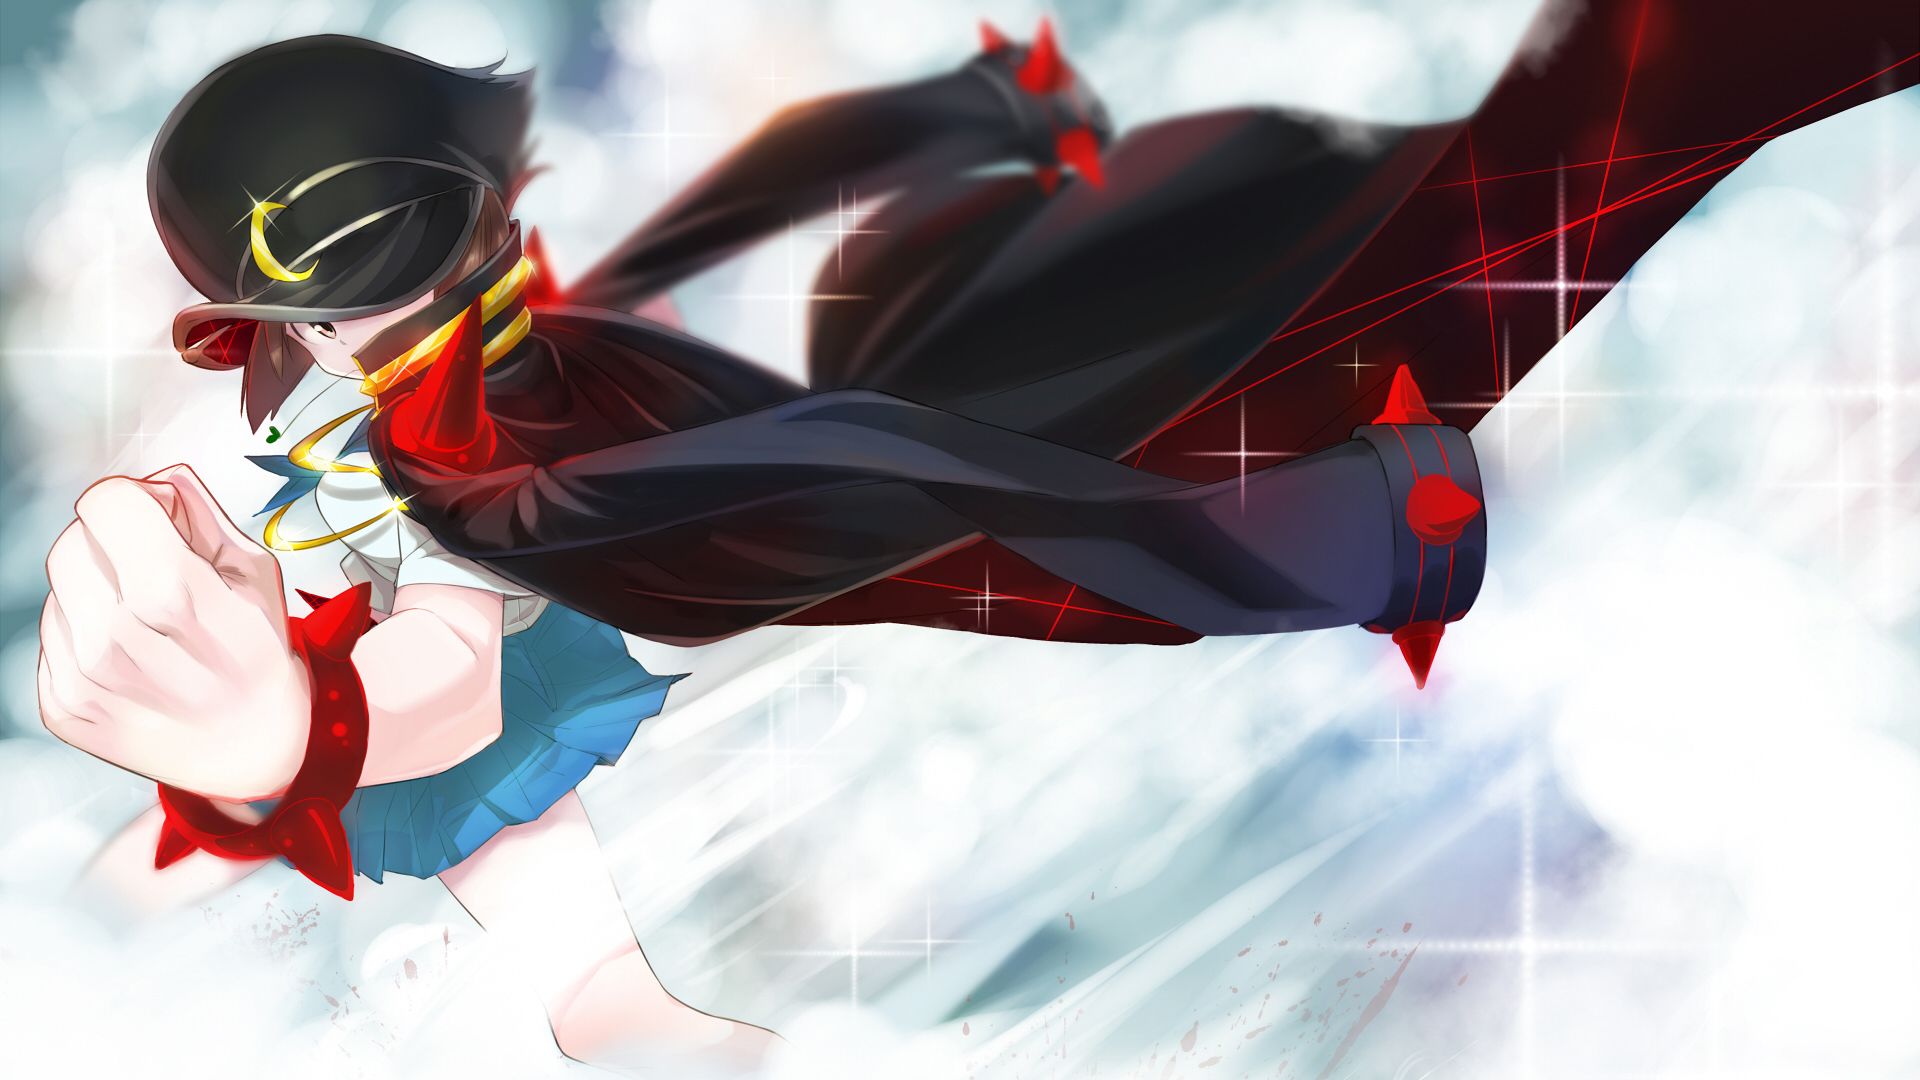 Free Download Mankanshoku Mako Girl Kill La Kill Hd Wallpaper